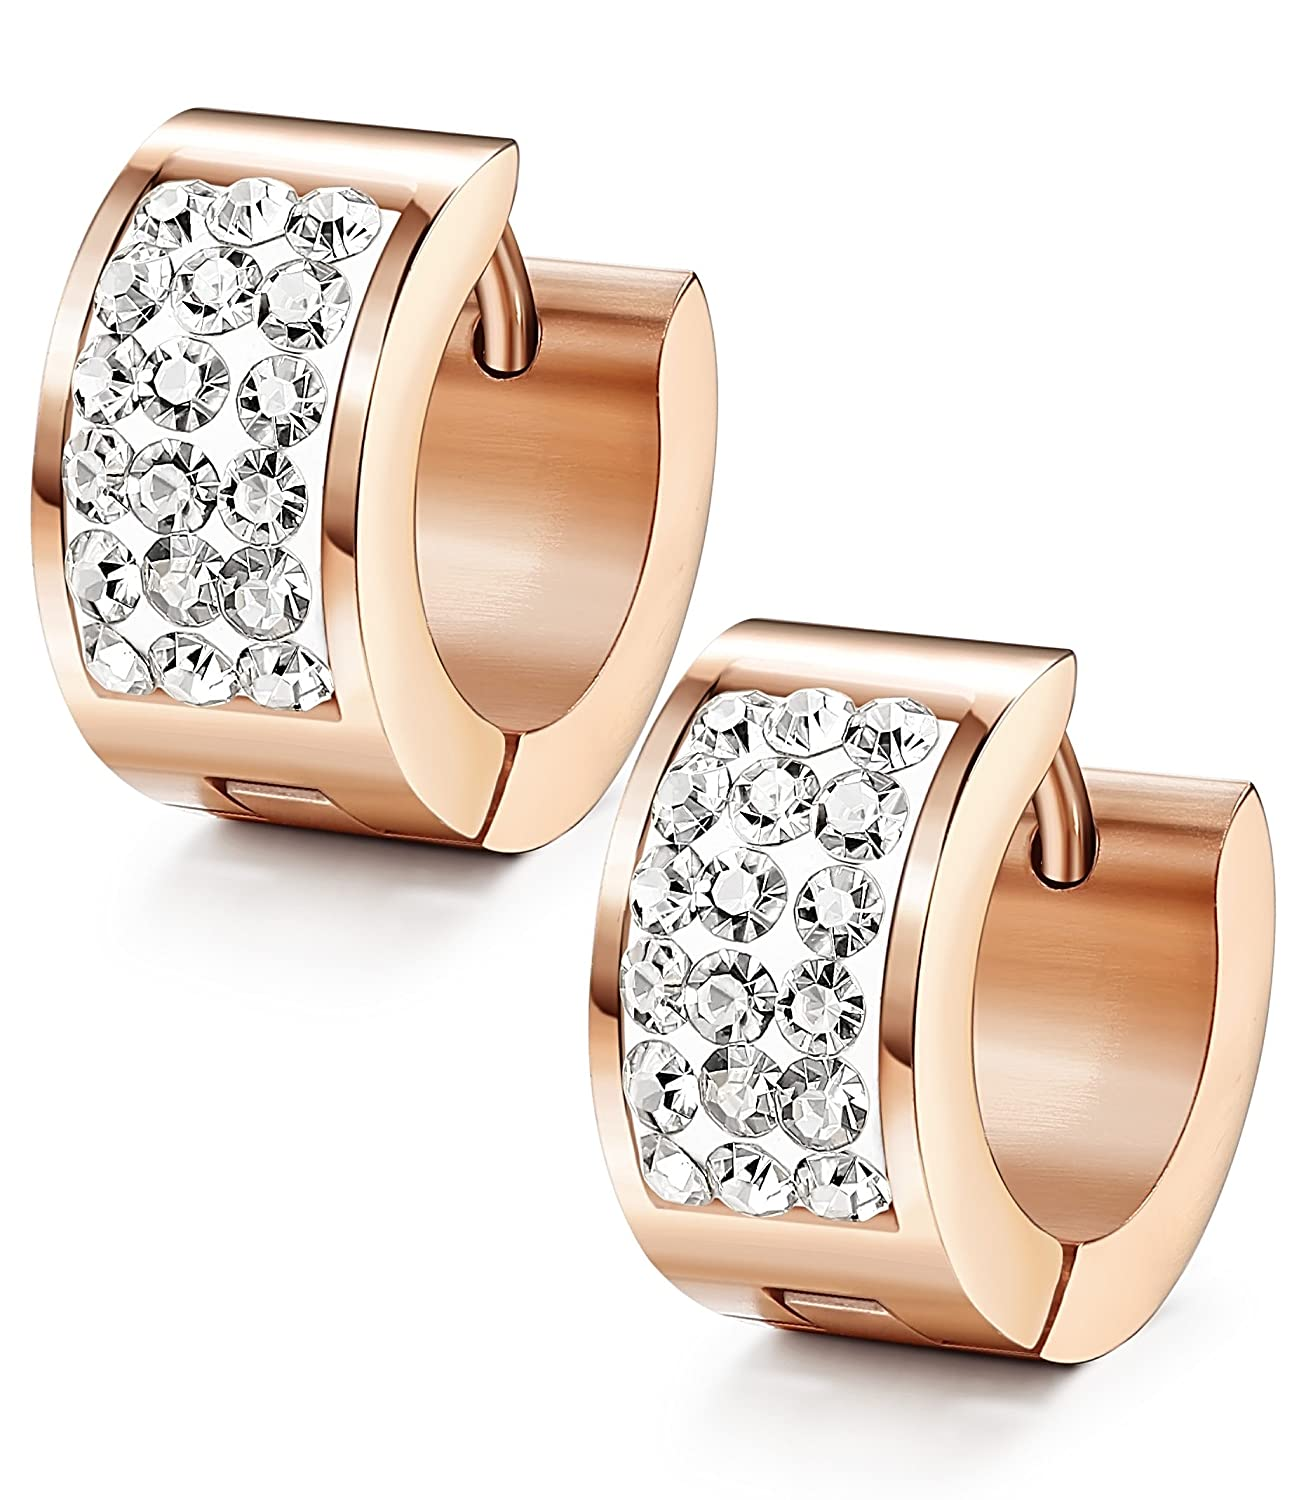 LOYALLOOK 3 Row Crystal Inlaid Stainless Steel Womens Mens Hoop Huggie Earrings TI0508002-W